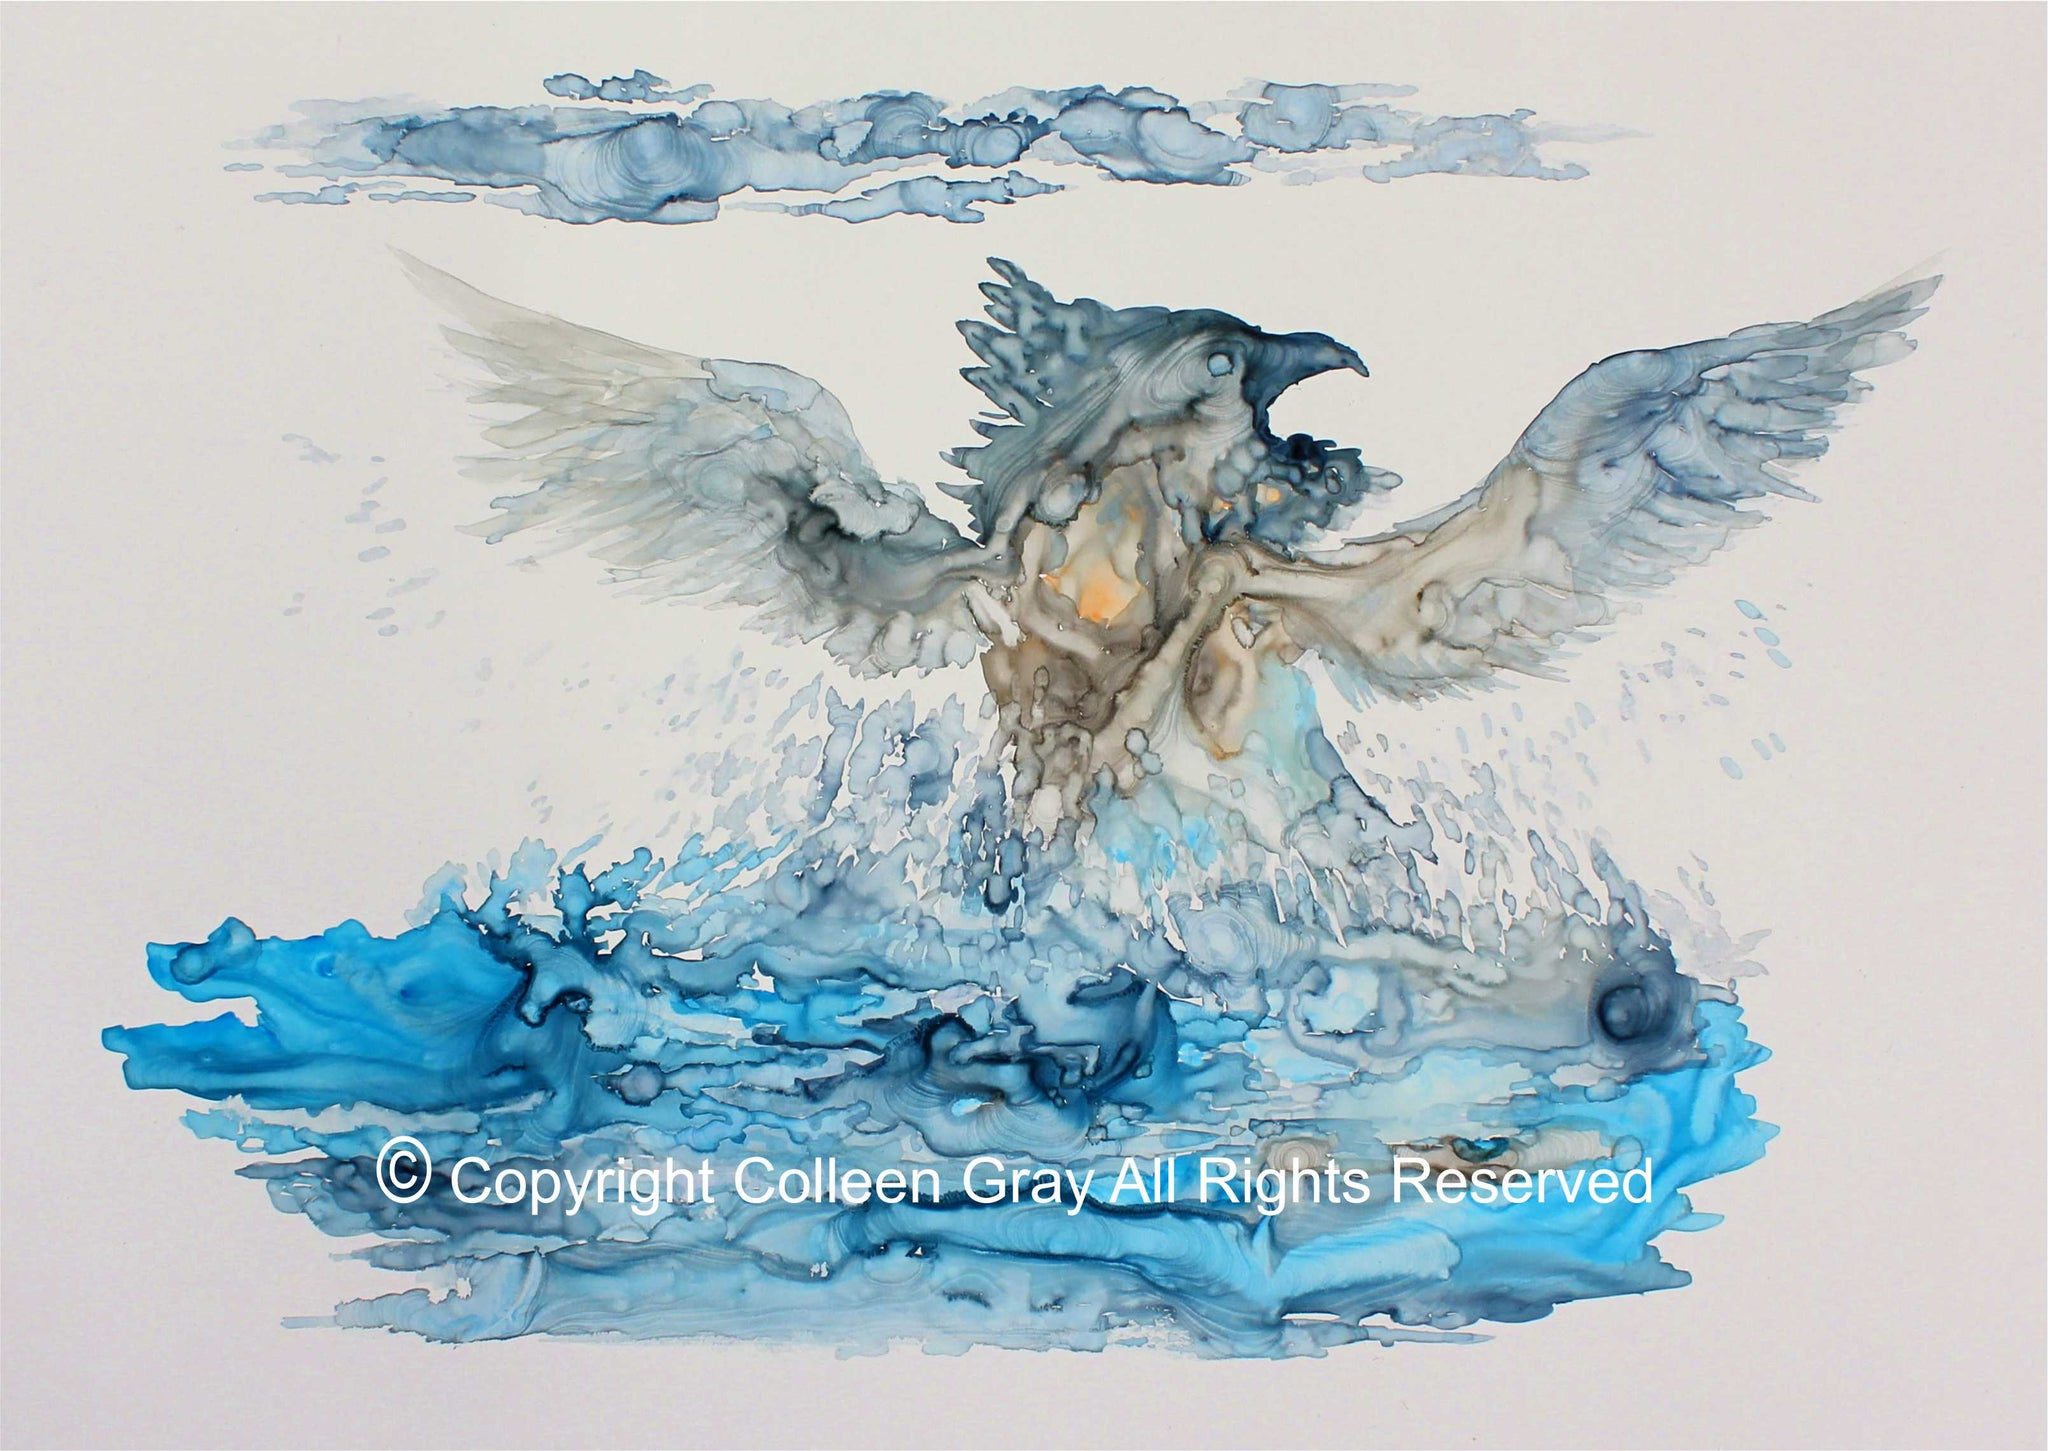 Image of Title: Blue Thunderbird Rising 16x20 archival print by Metis Artist Colleen Gray Indigenous Canadian Art Work. Image of Thunderbird powerfully rising out of the blue water, wings outstretched, pointy beak. For sale at https://artforaidshop.ca